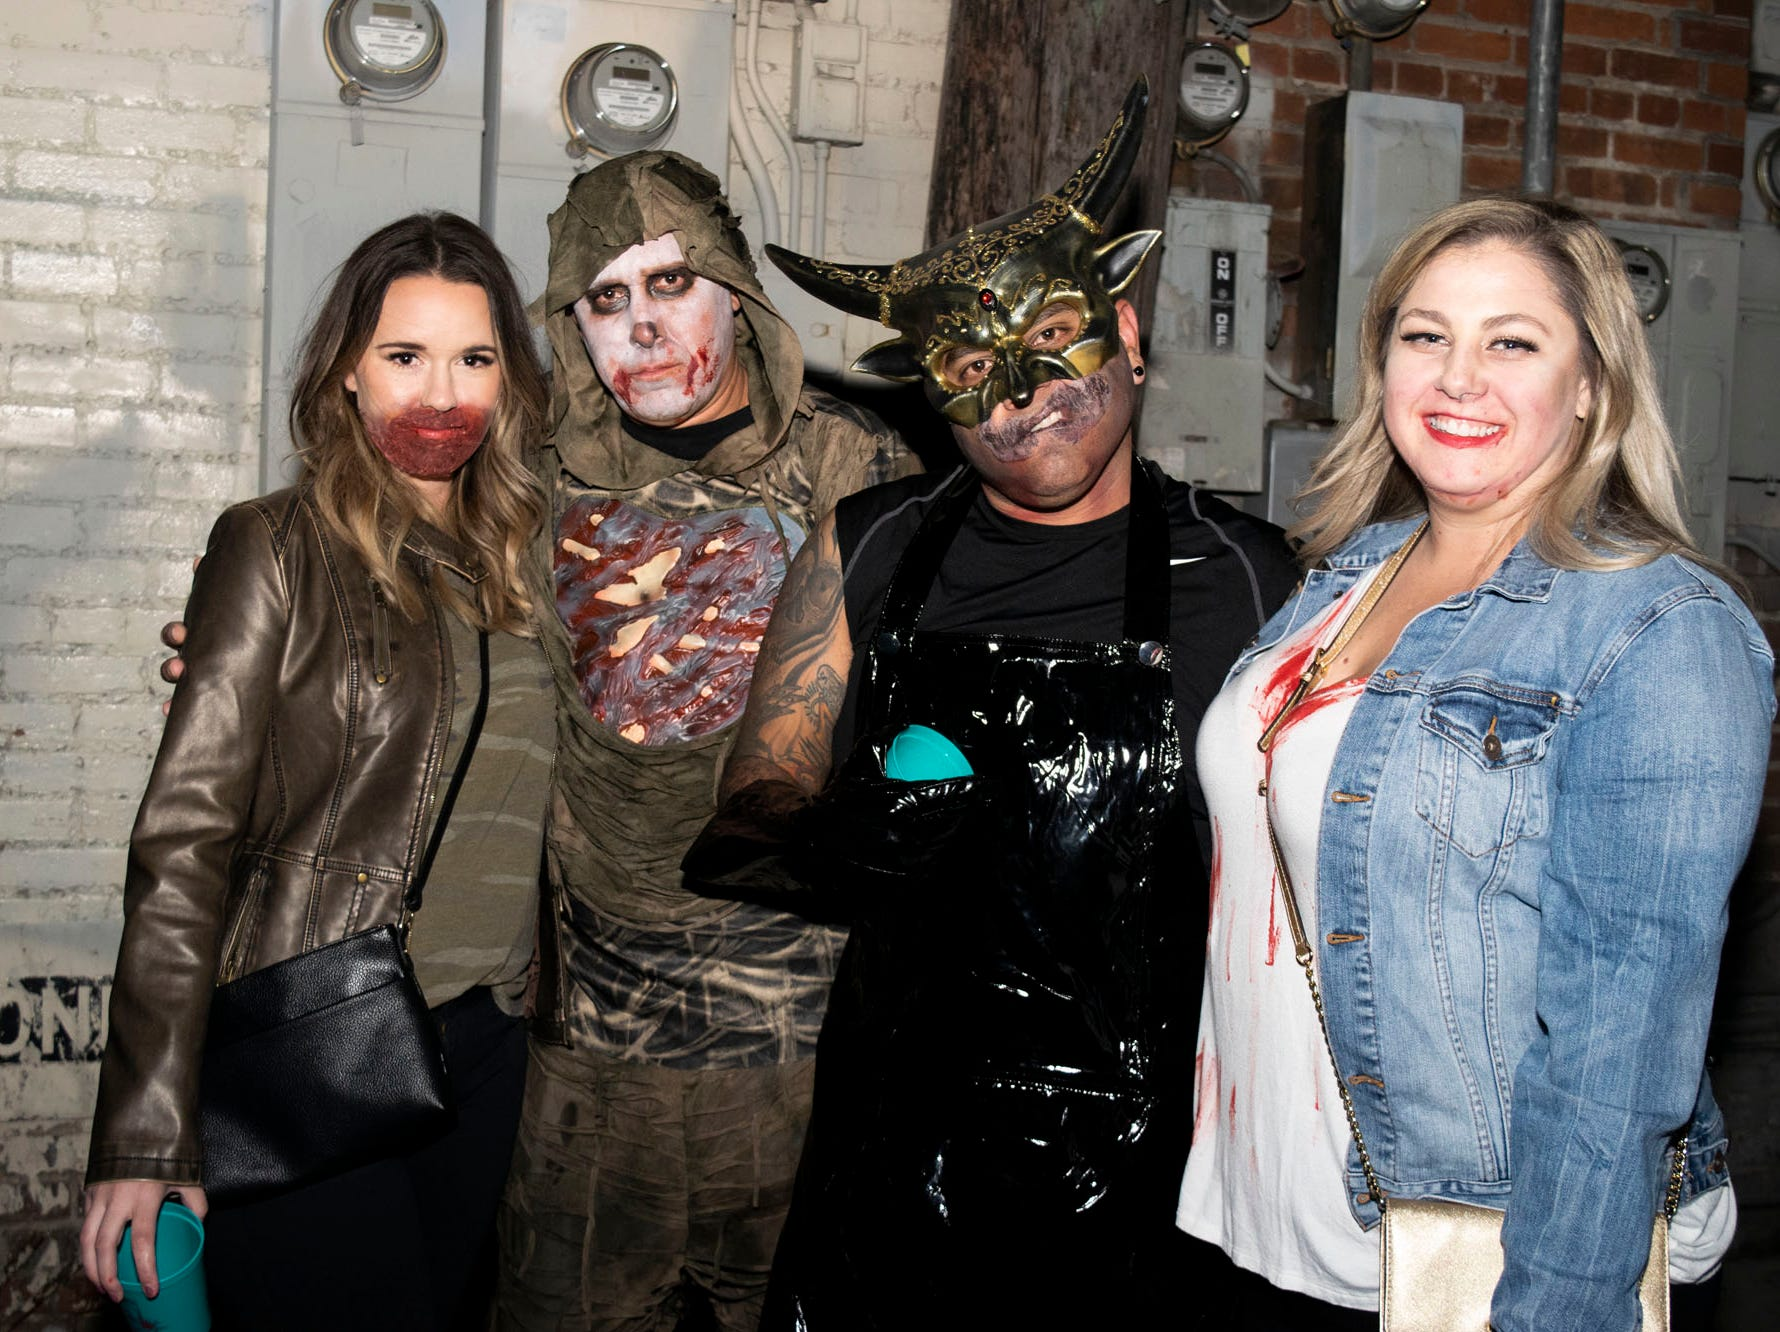 Reno's undead walked the streets for the Zombie Crawl on Saturday, Oct. 20, 2018. Reno, Nev.